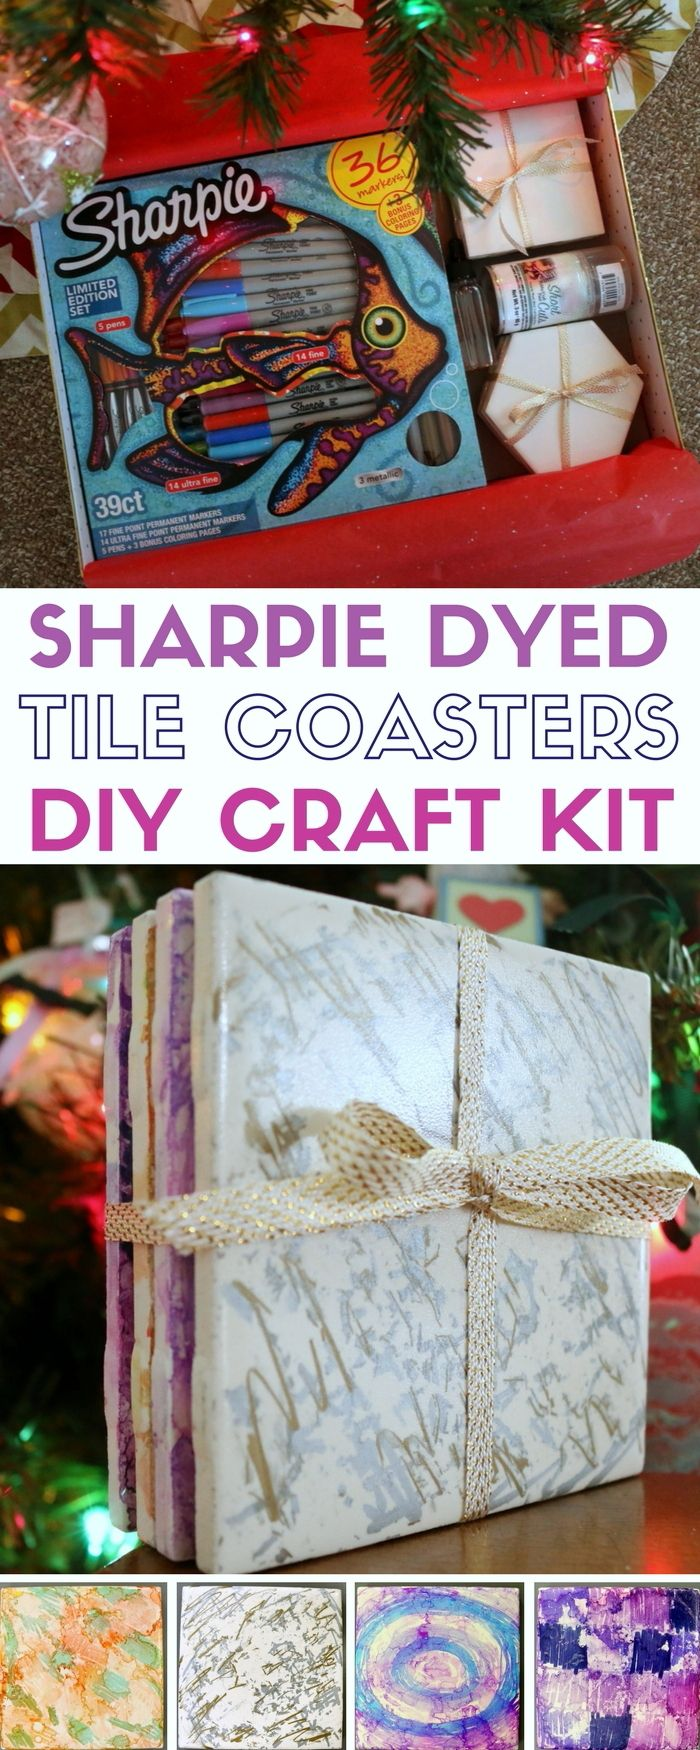 How To Make Sharpie Dyed Tile Coasters Diy Craft Kit Gift Diy From